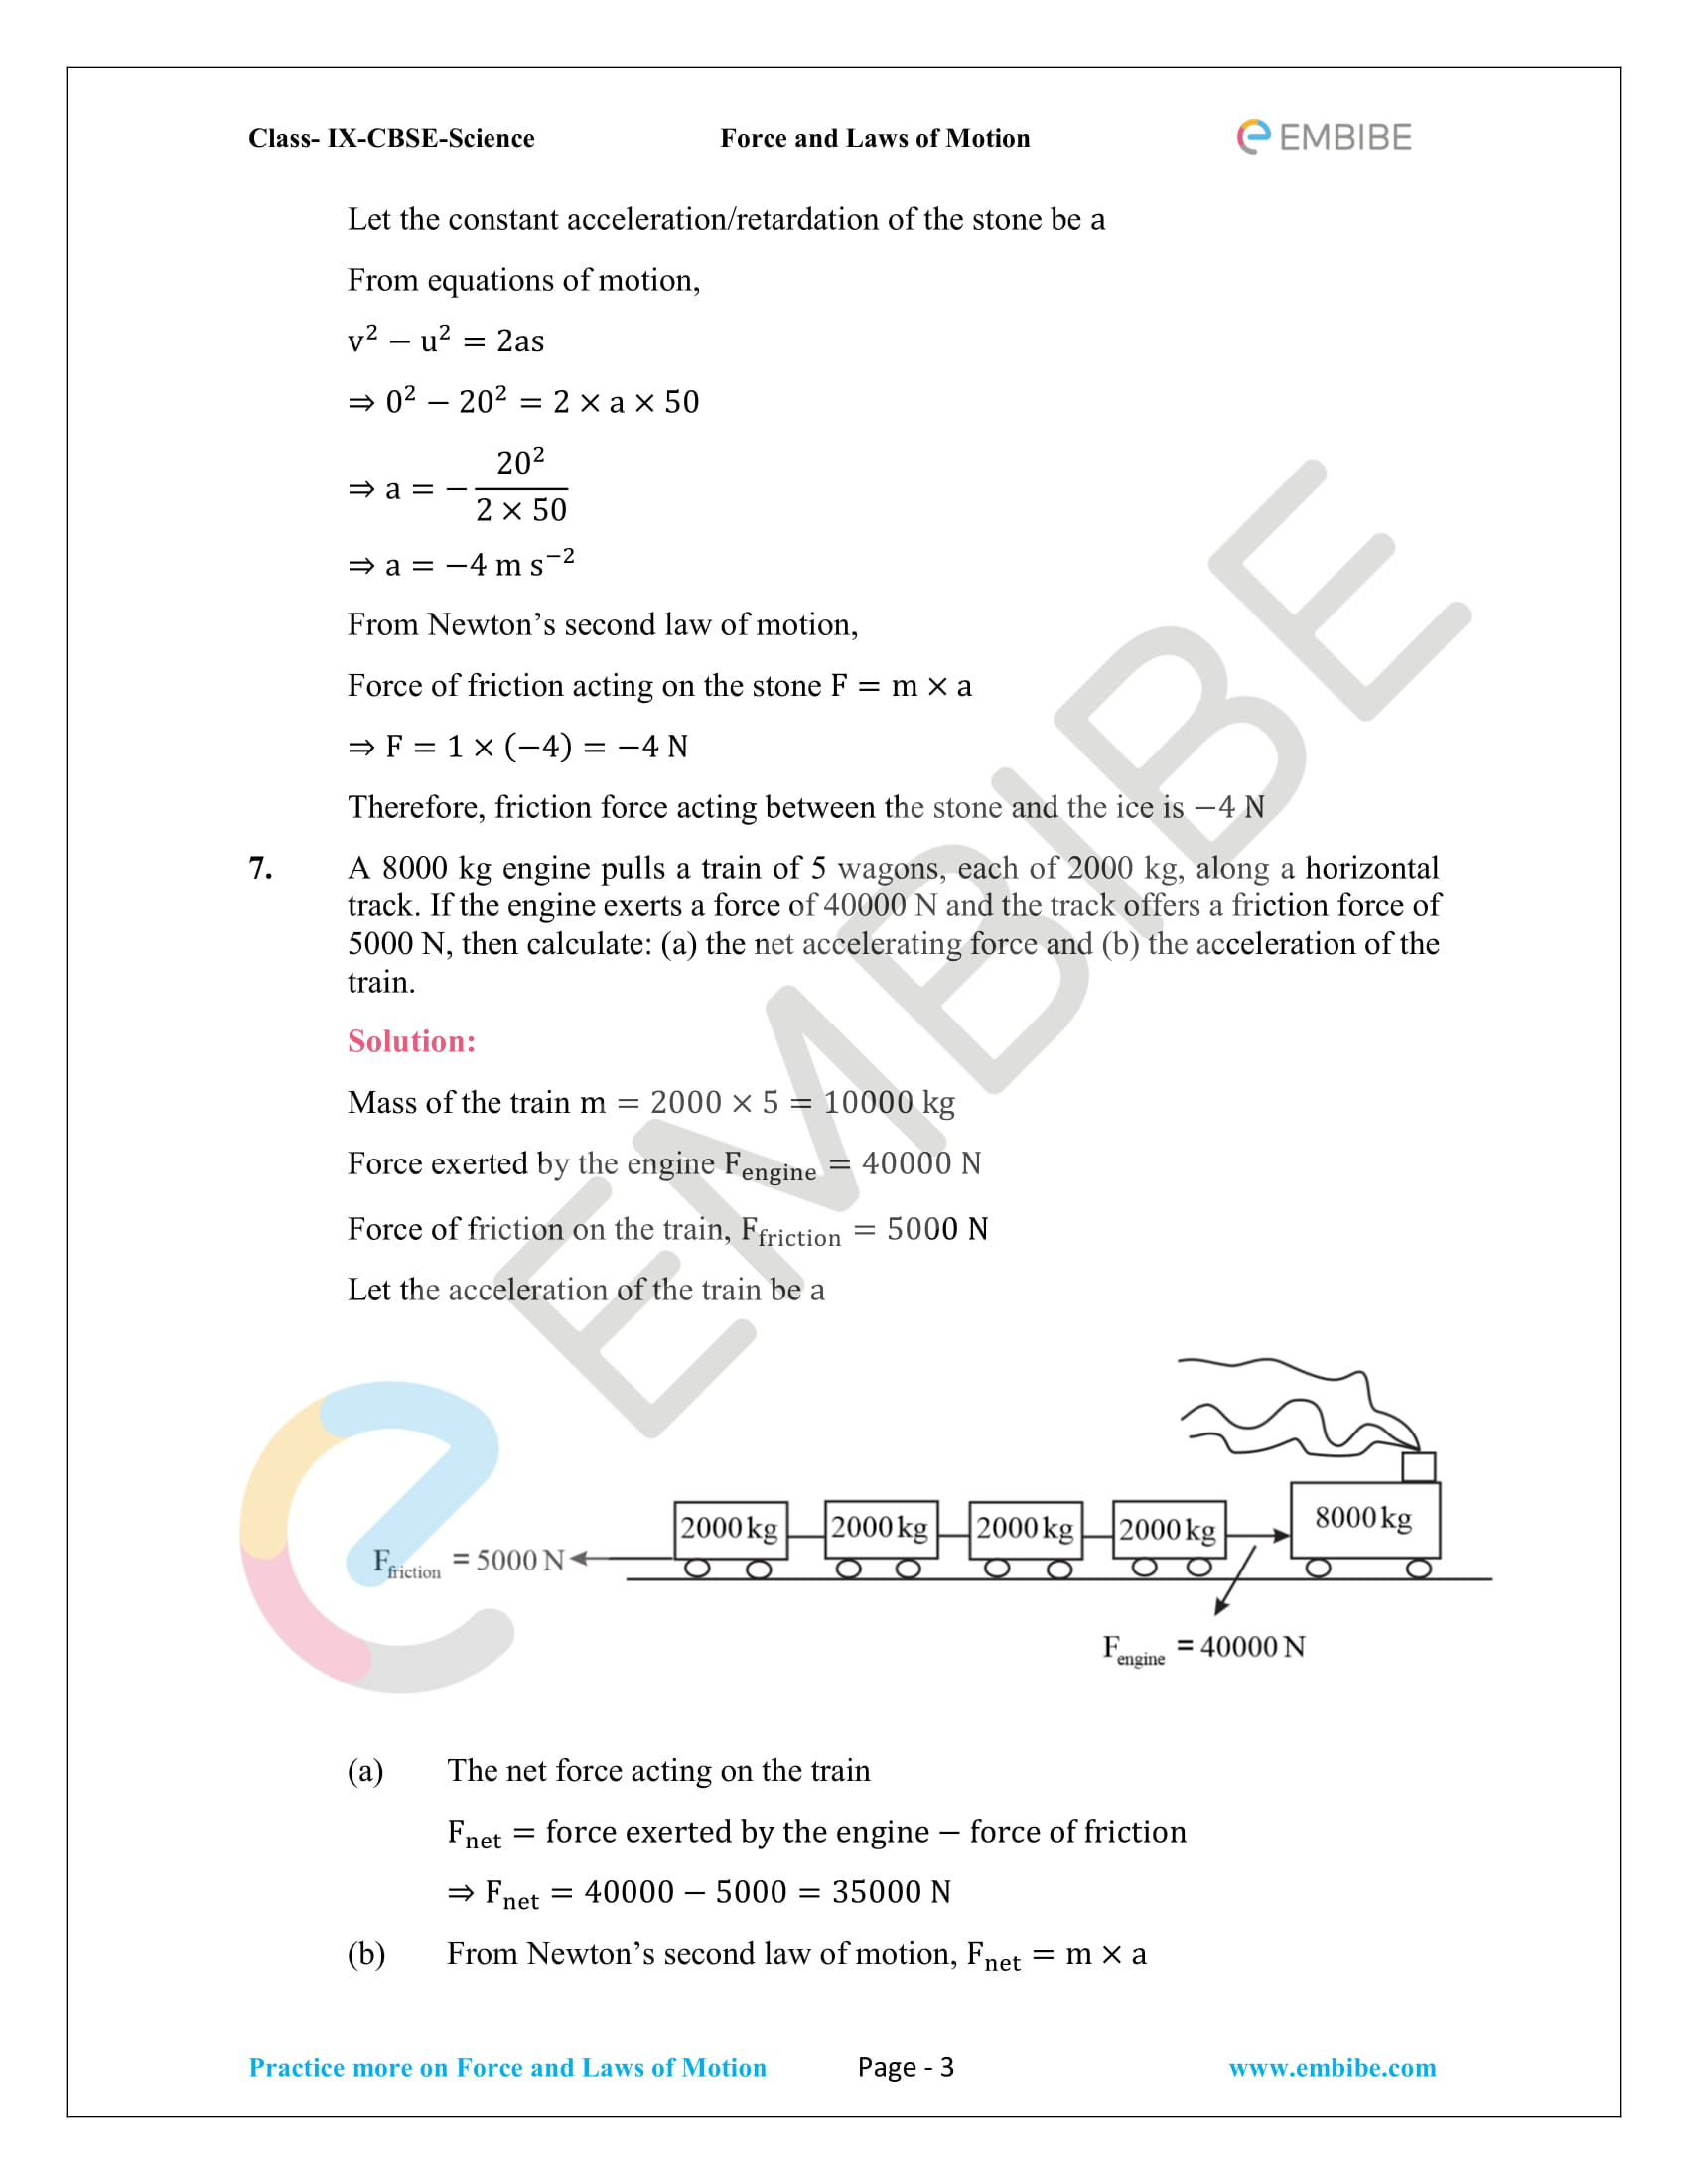 CBSE NCERT Solutions For Class 9 Science Chapter 9 – Force And Laws Of Motion - 3